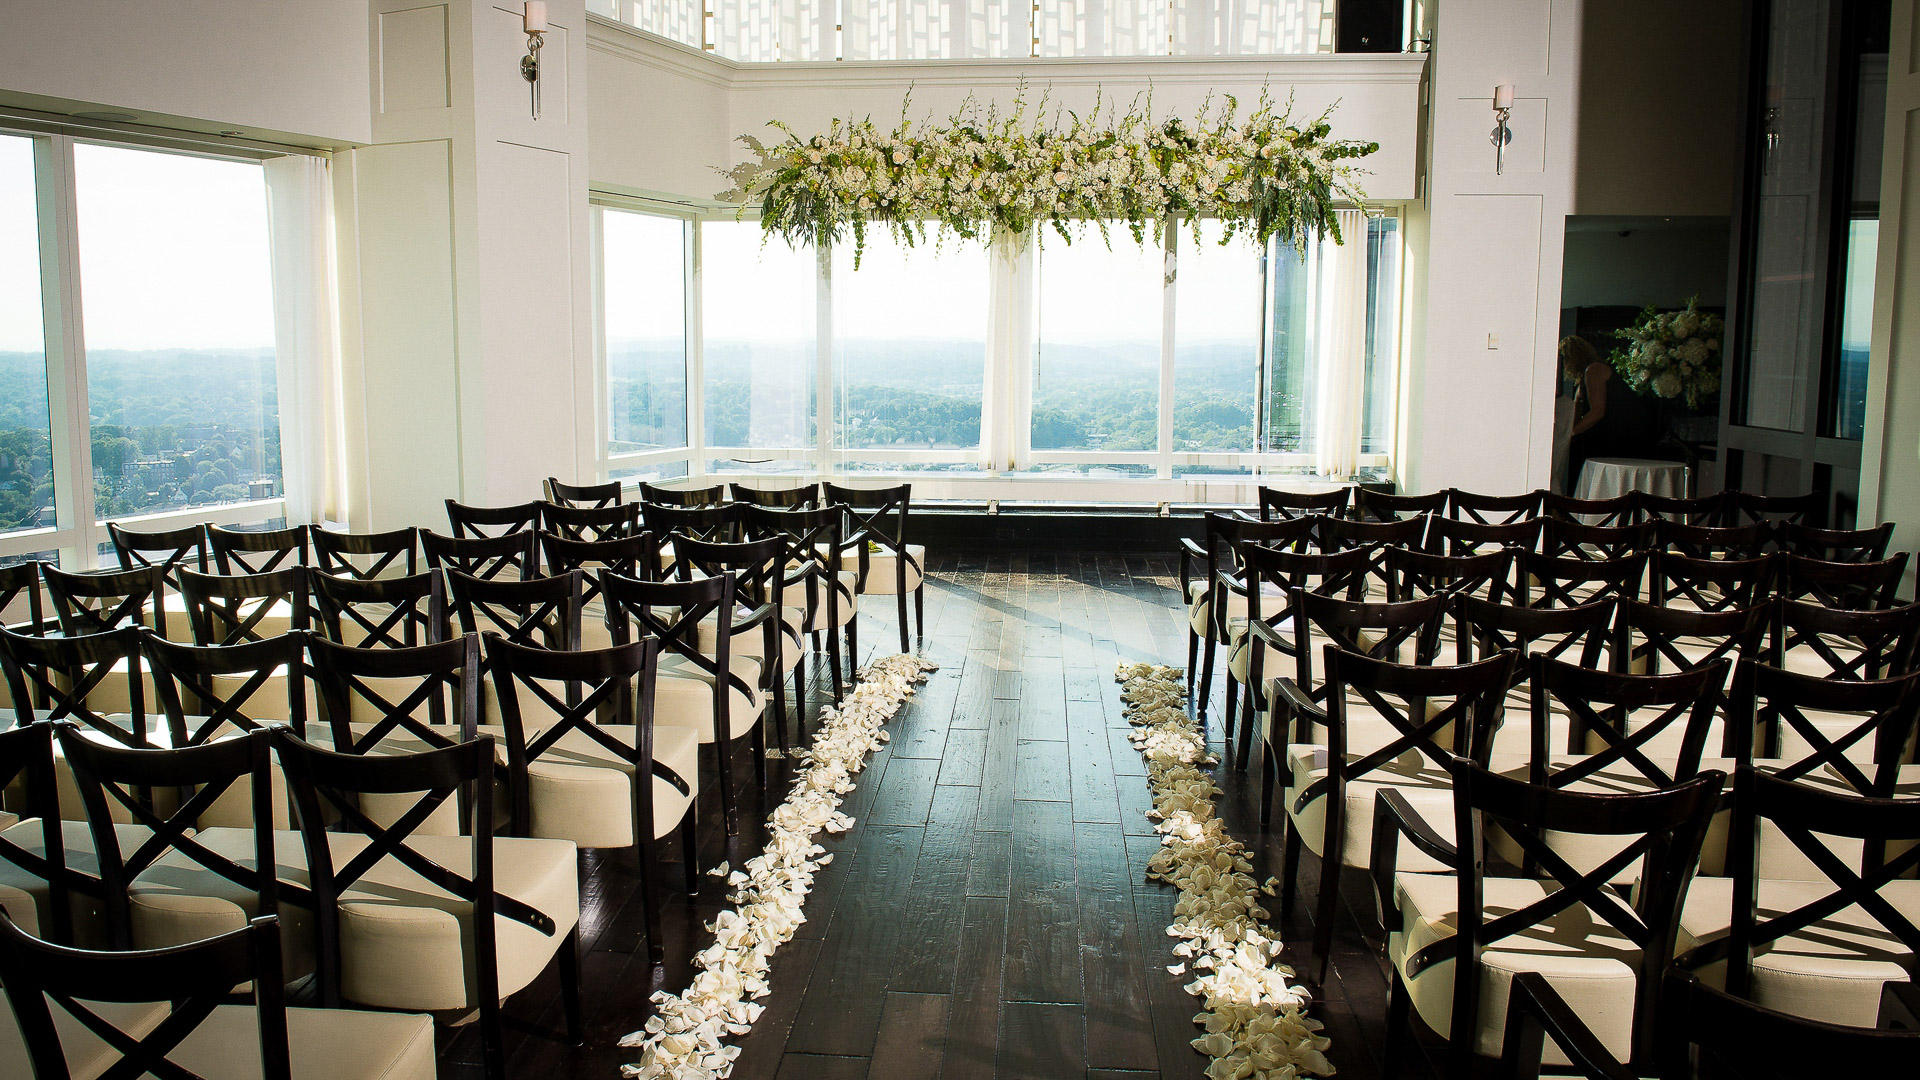 Ritz Carlton White Plains 42 restaurant wedding ceremony setup wth Hudson Valley views